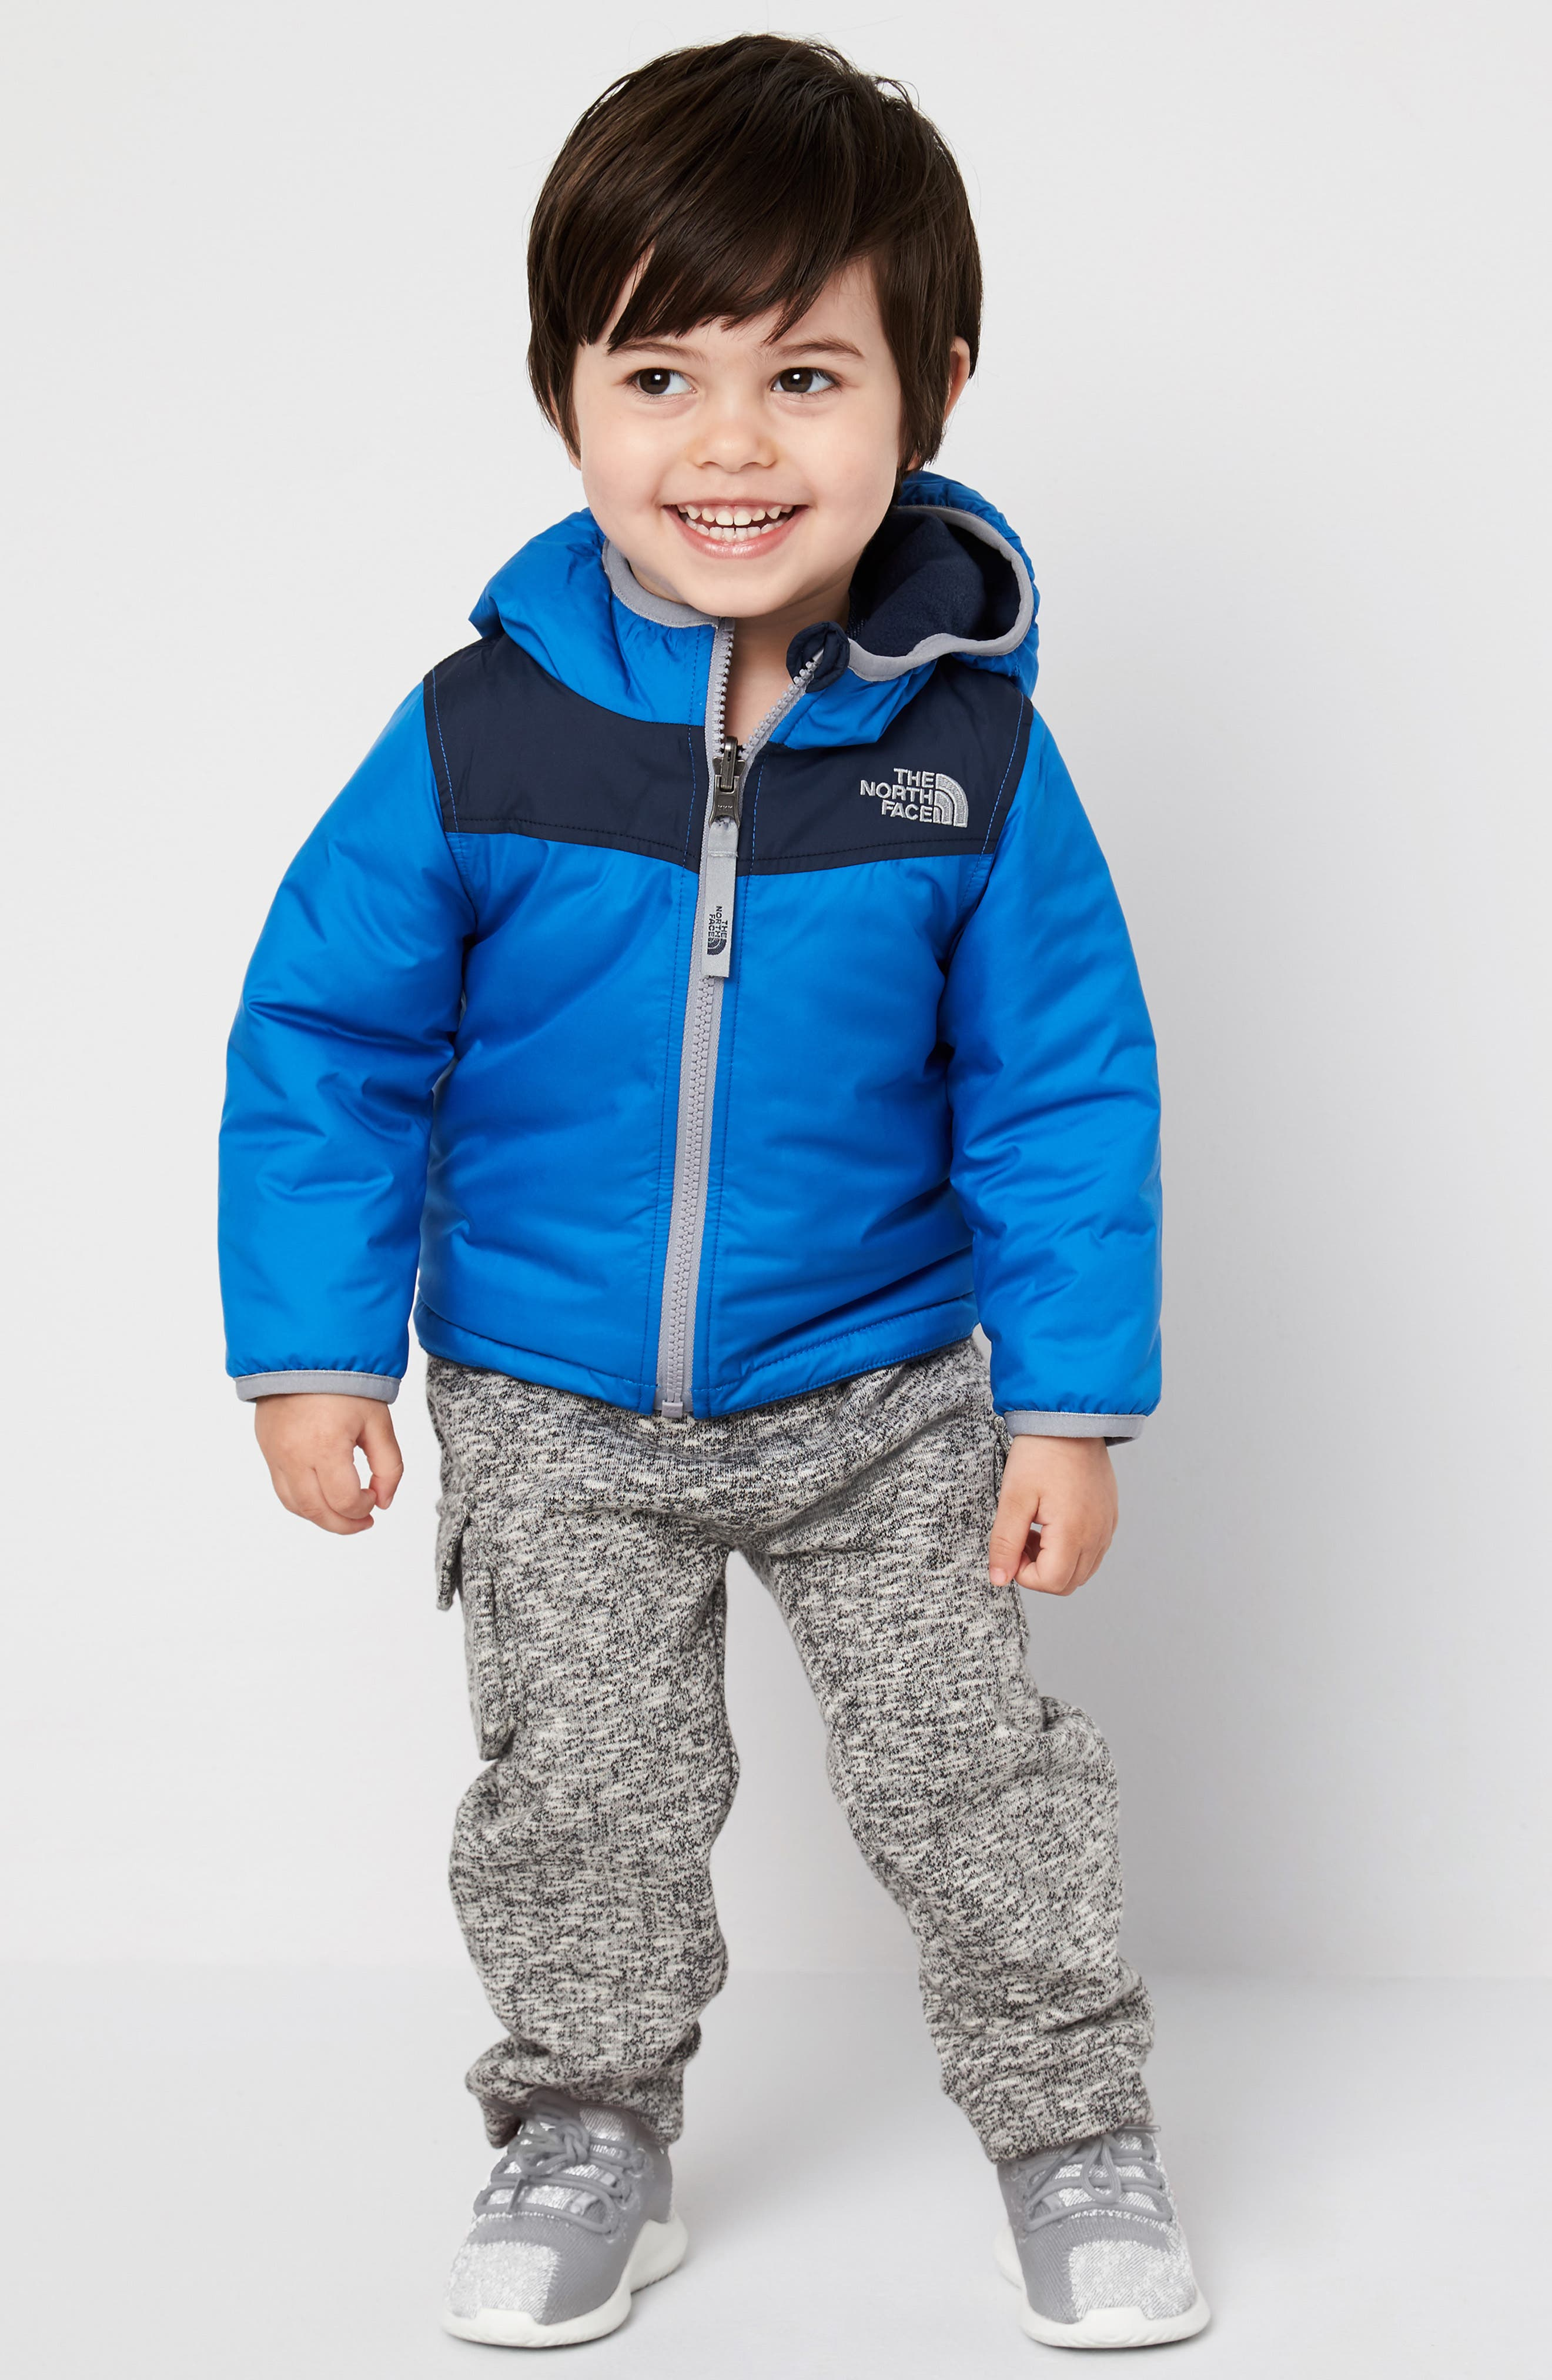 The North Face Jacket, Tucker + Tate T-Shirt & Pants Outfit with Accessories (Baby Boys)